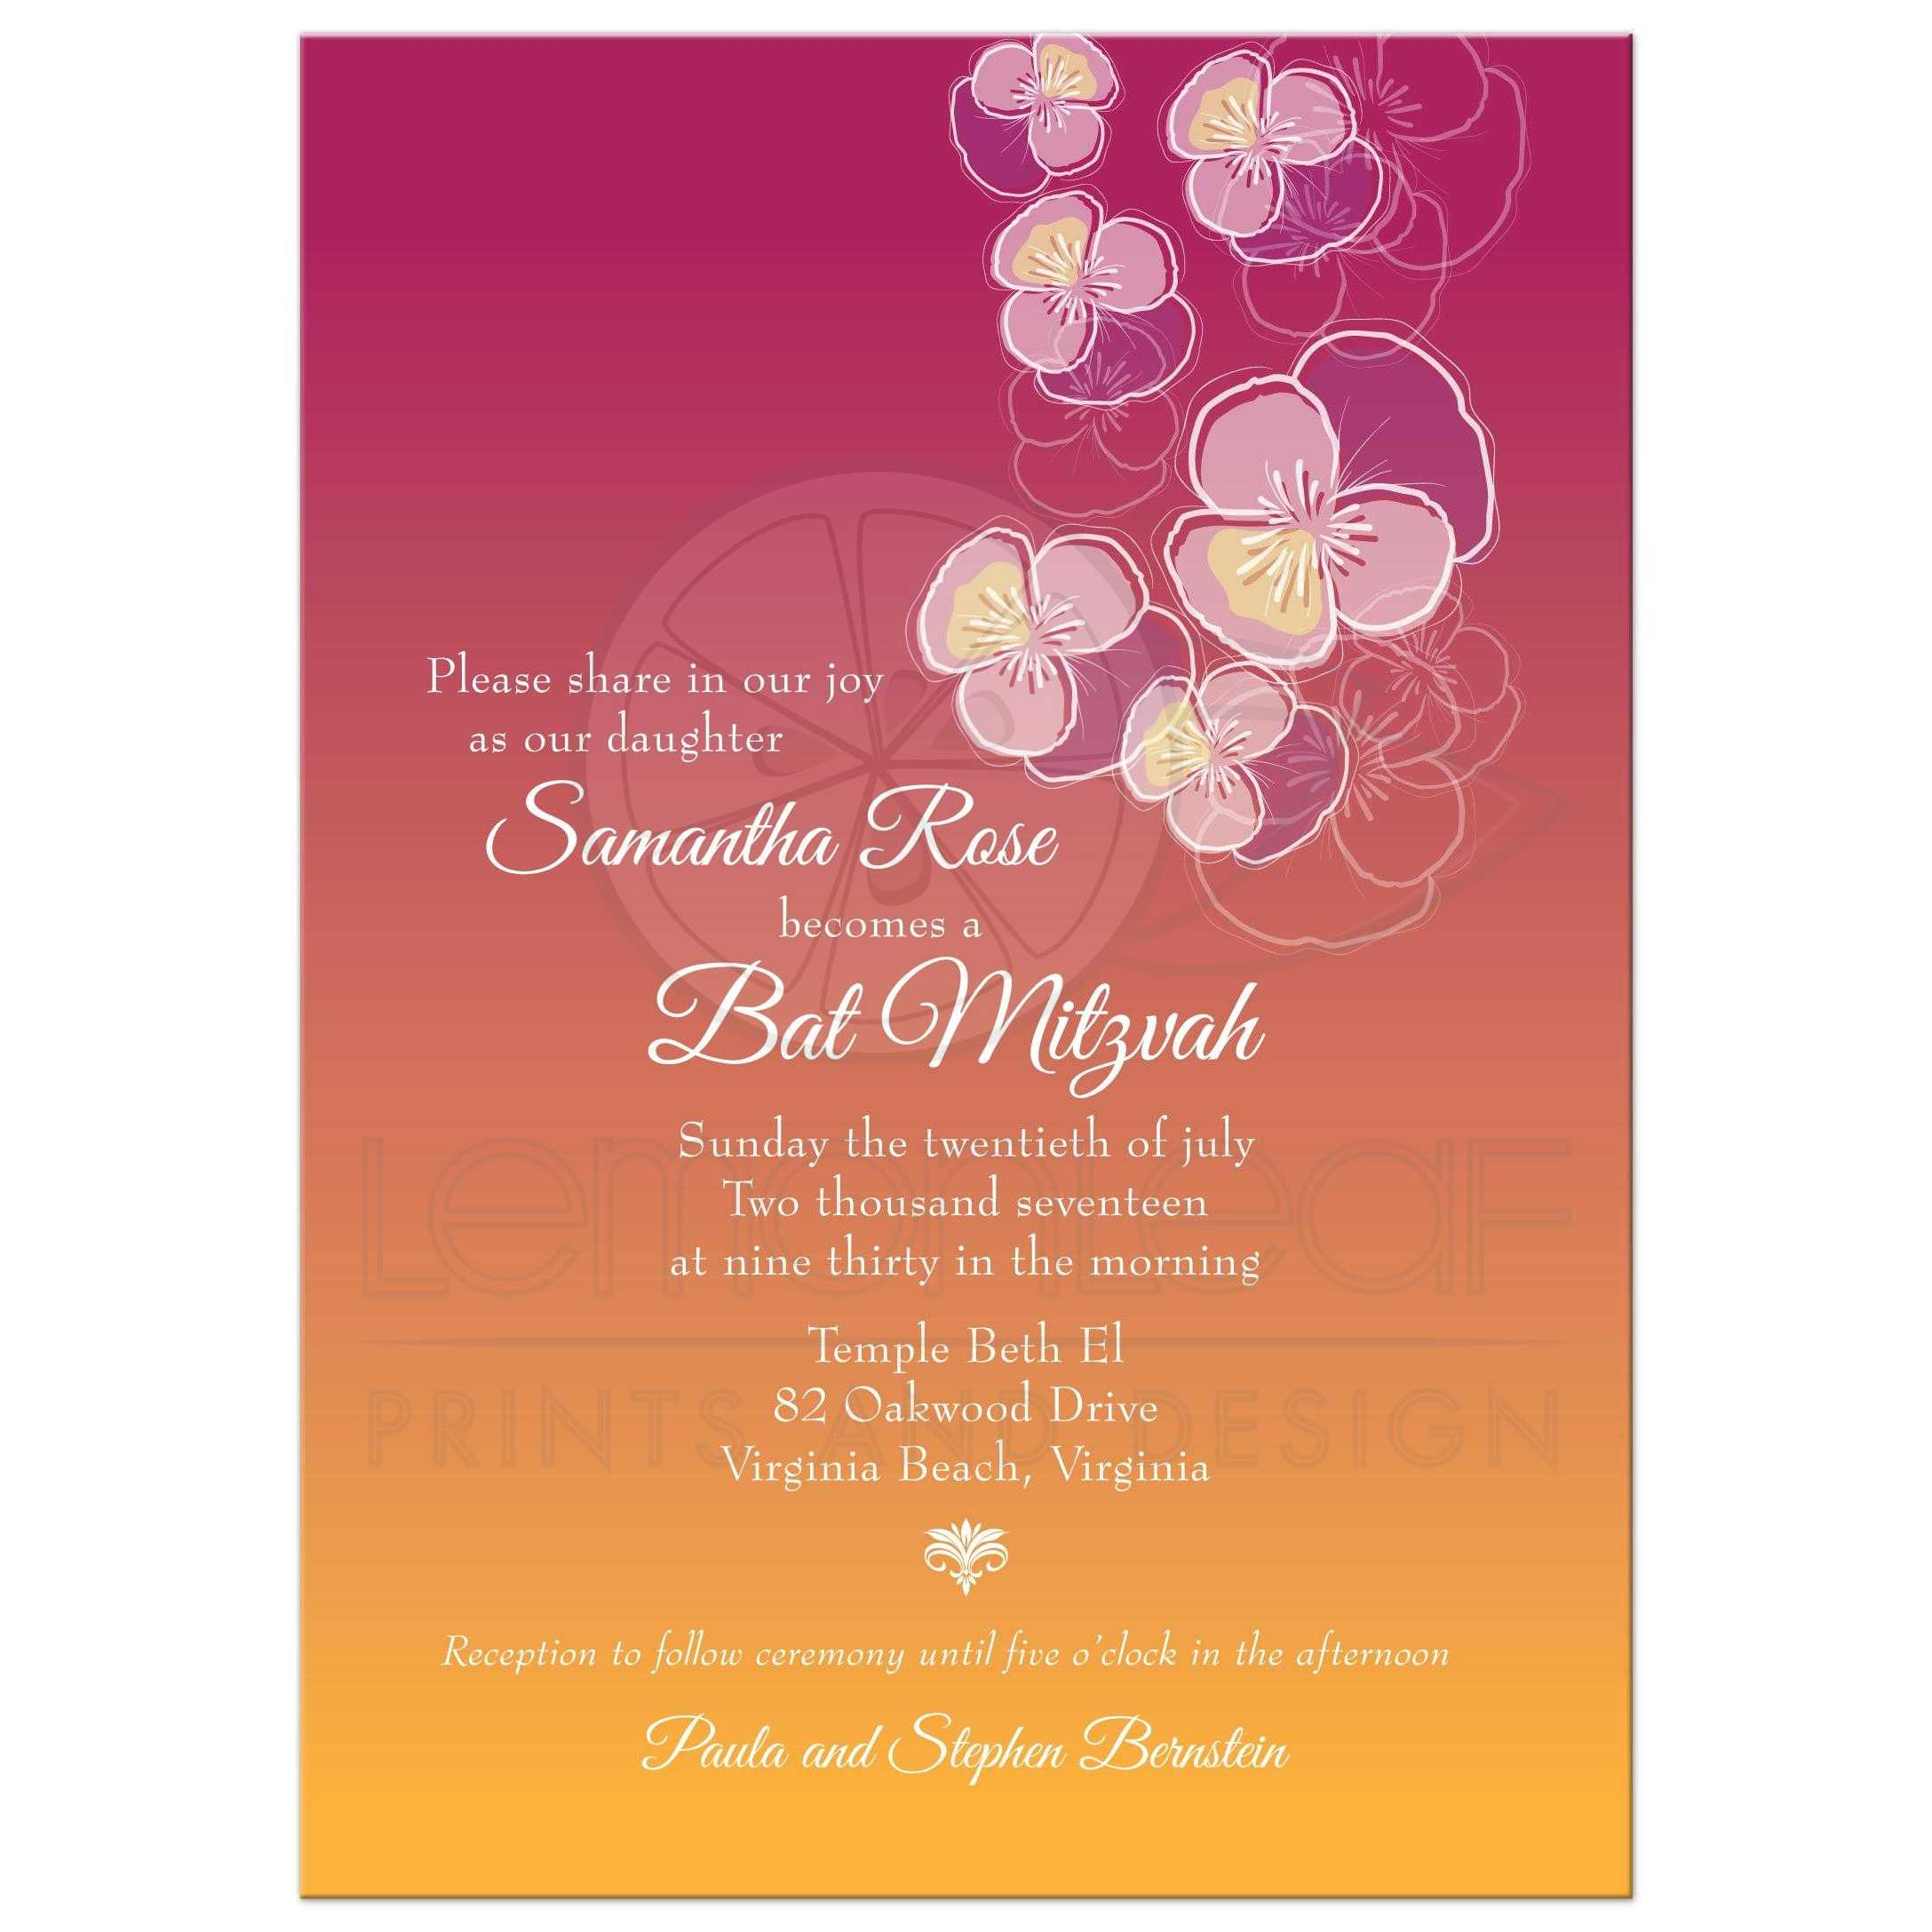 Pink and Gold Ombre Floral Falling Pansy Bat Mitzvah Invitation